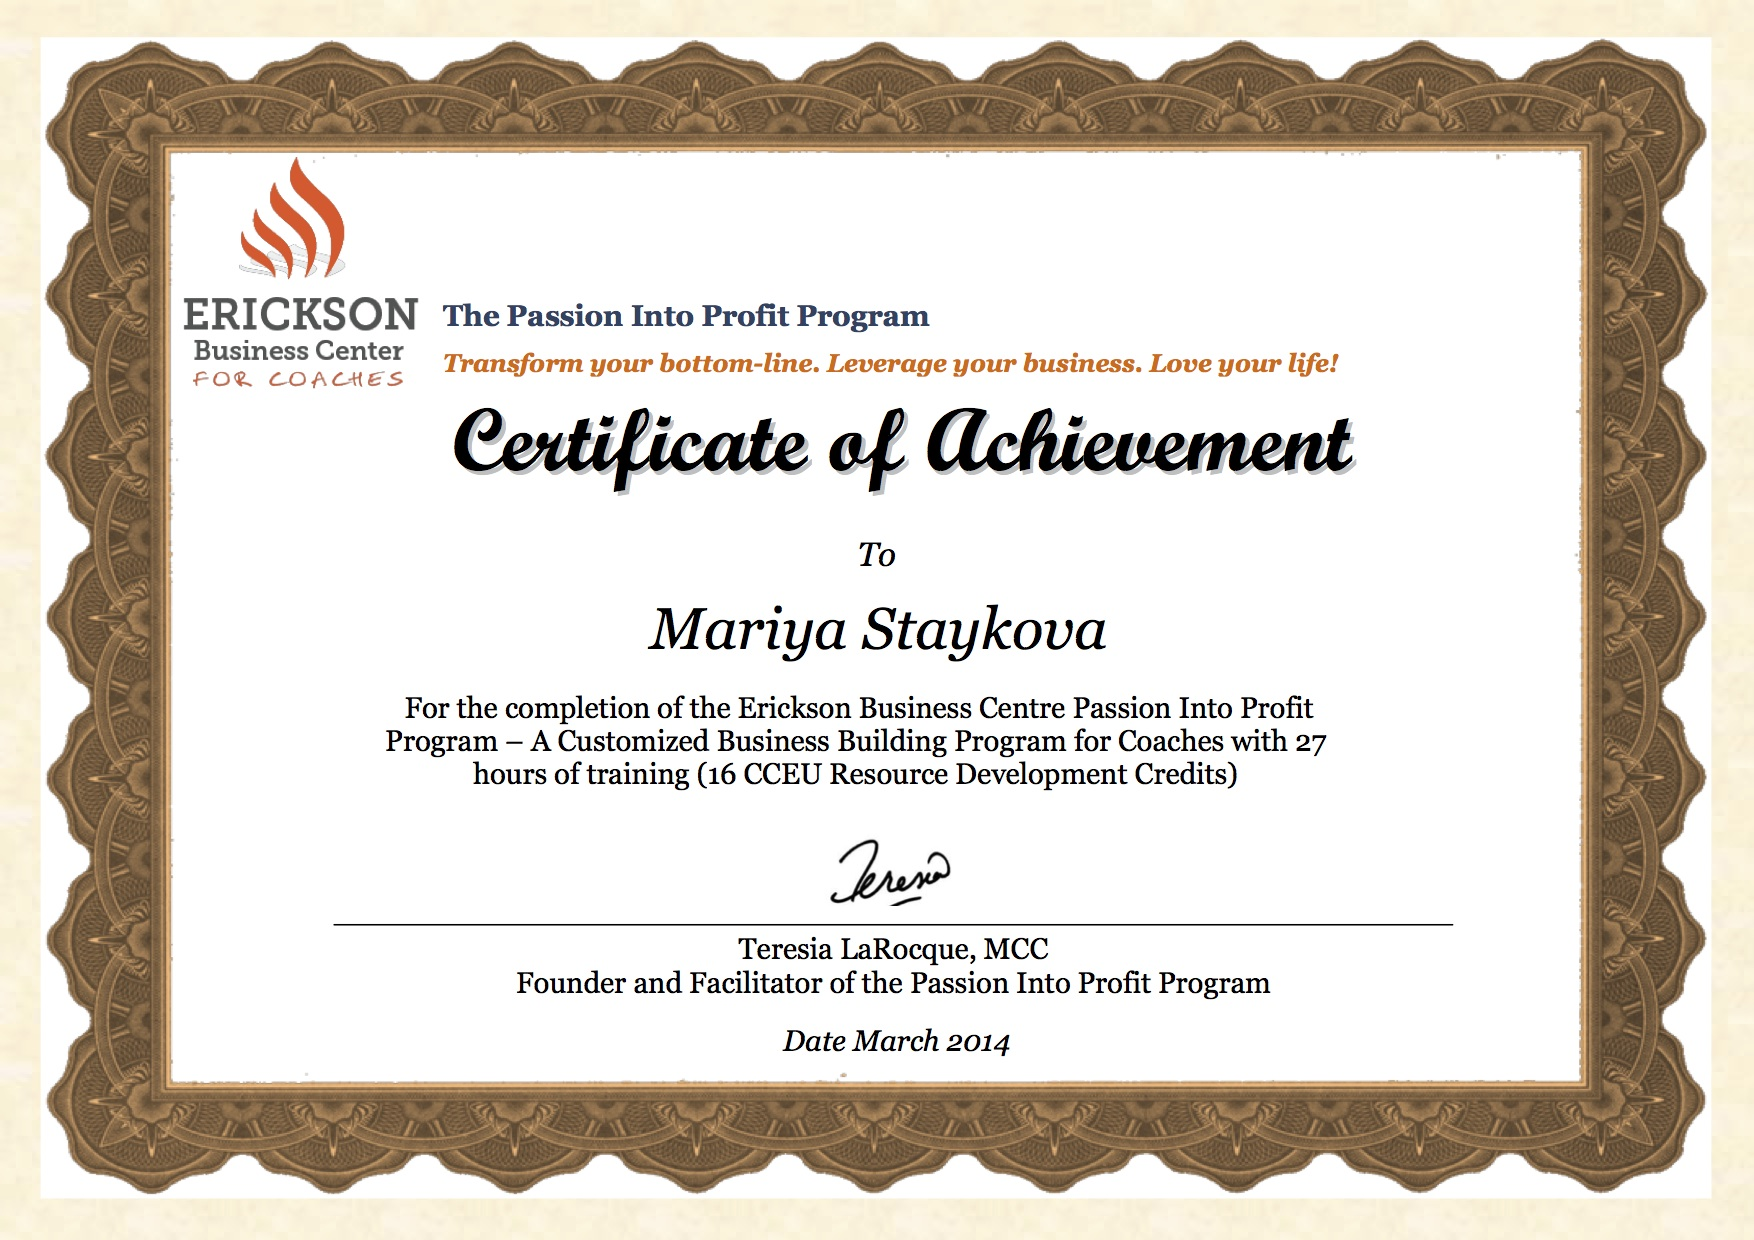 Maria Staykova Erickson Certificate of Achievement